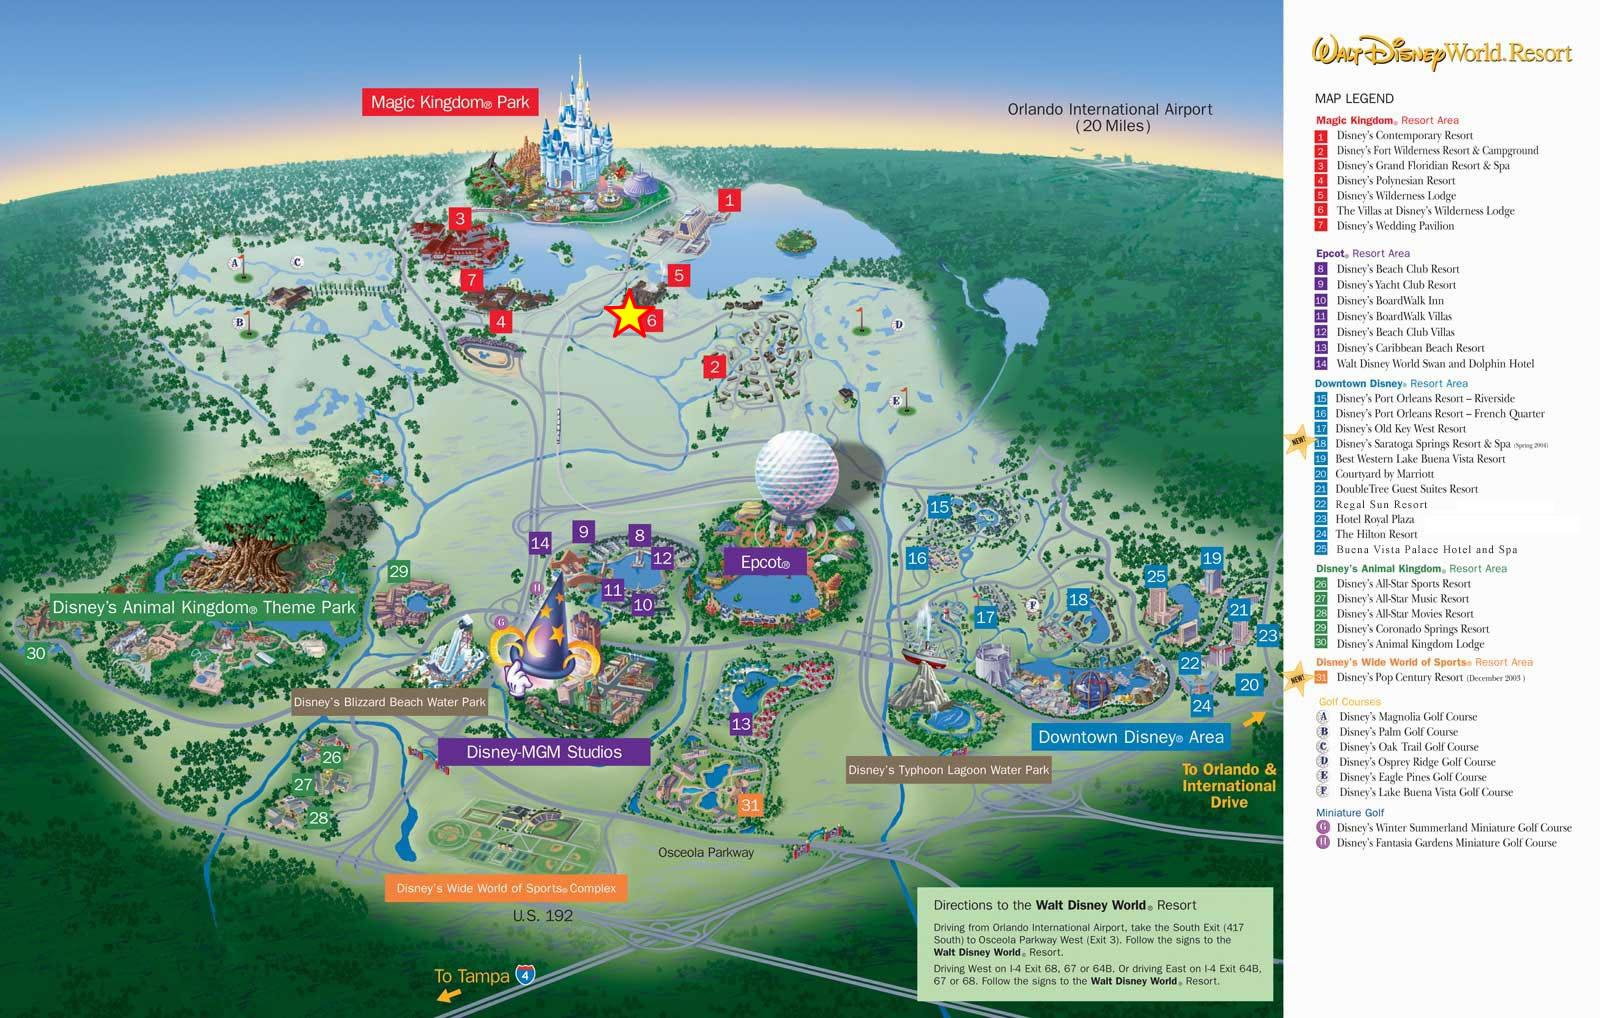 the-villas-at-wilderness-lodge-location-map